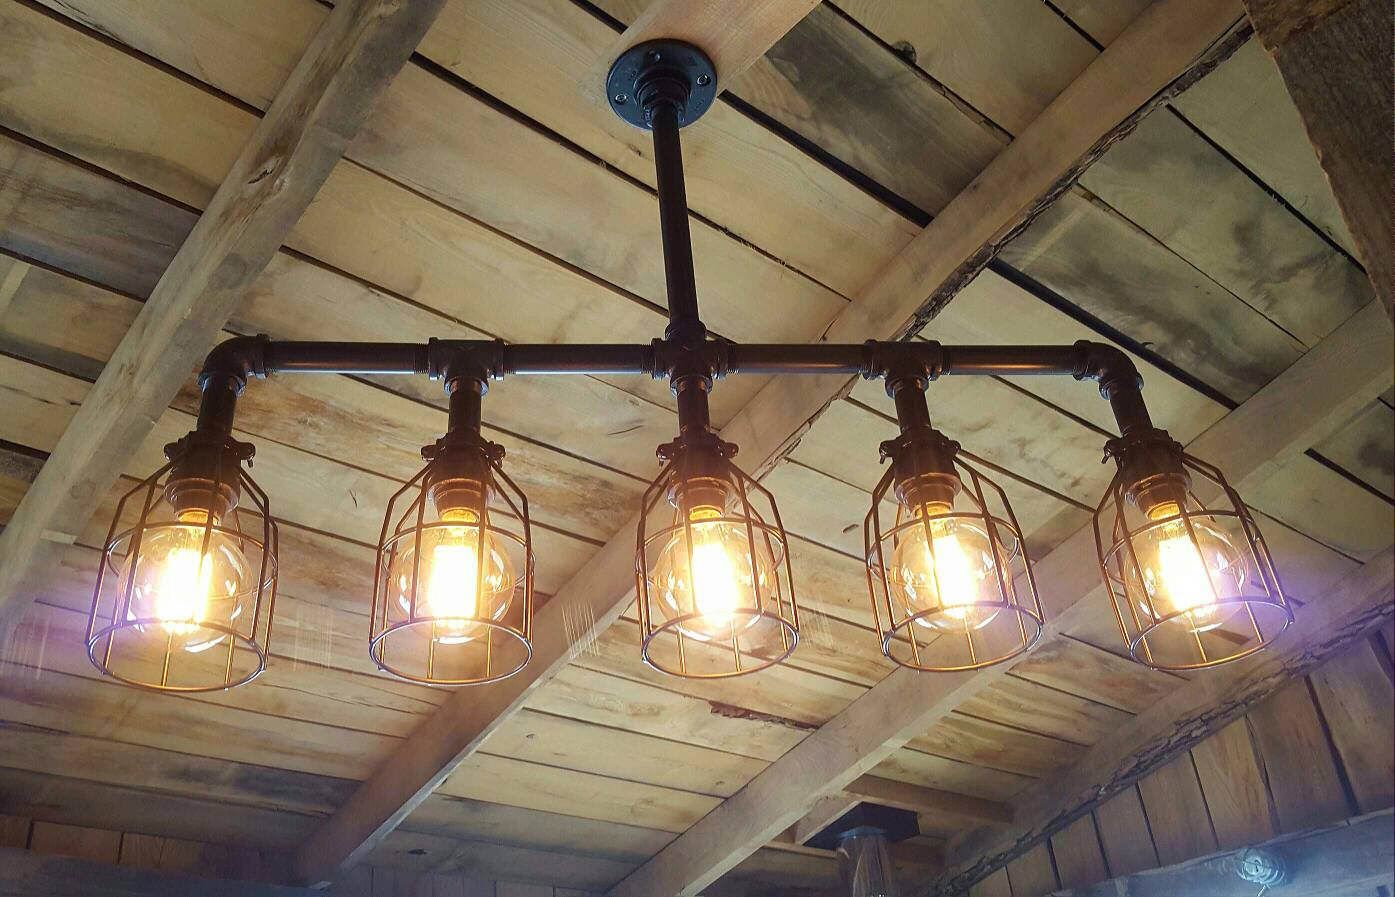 Rustic Industrial Lighting Chandelier 1 - Chandeliers - iD Lights